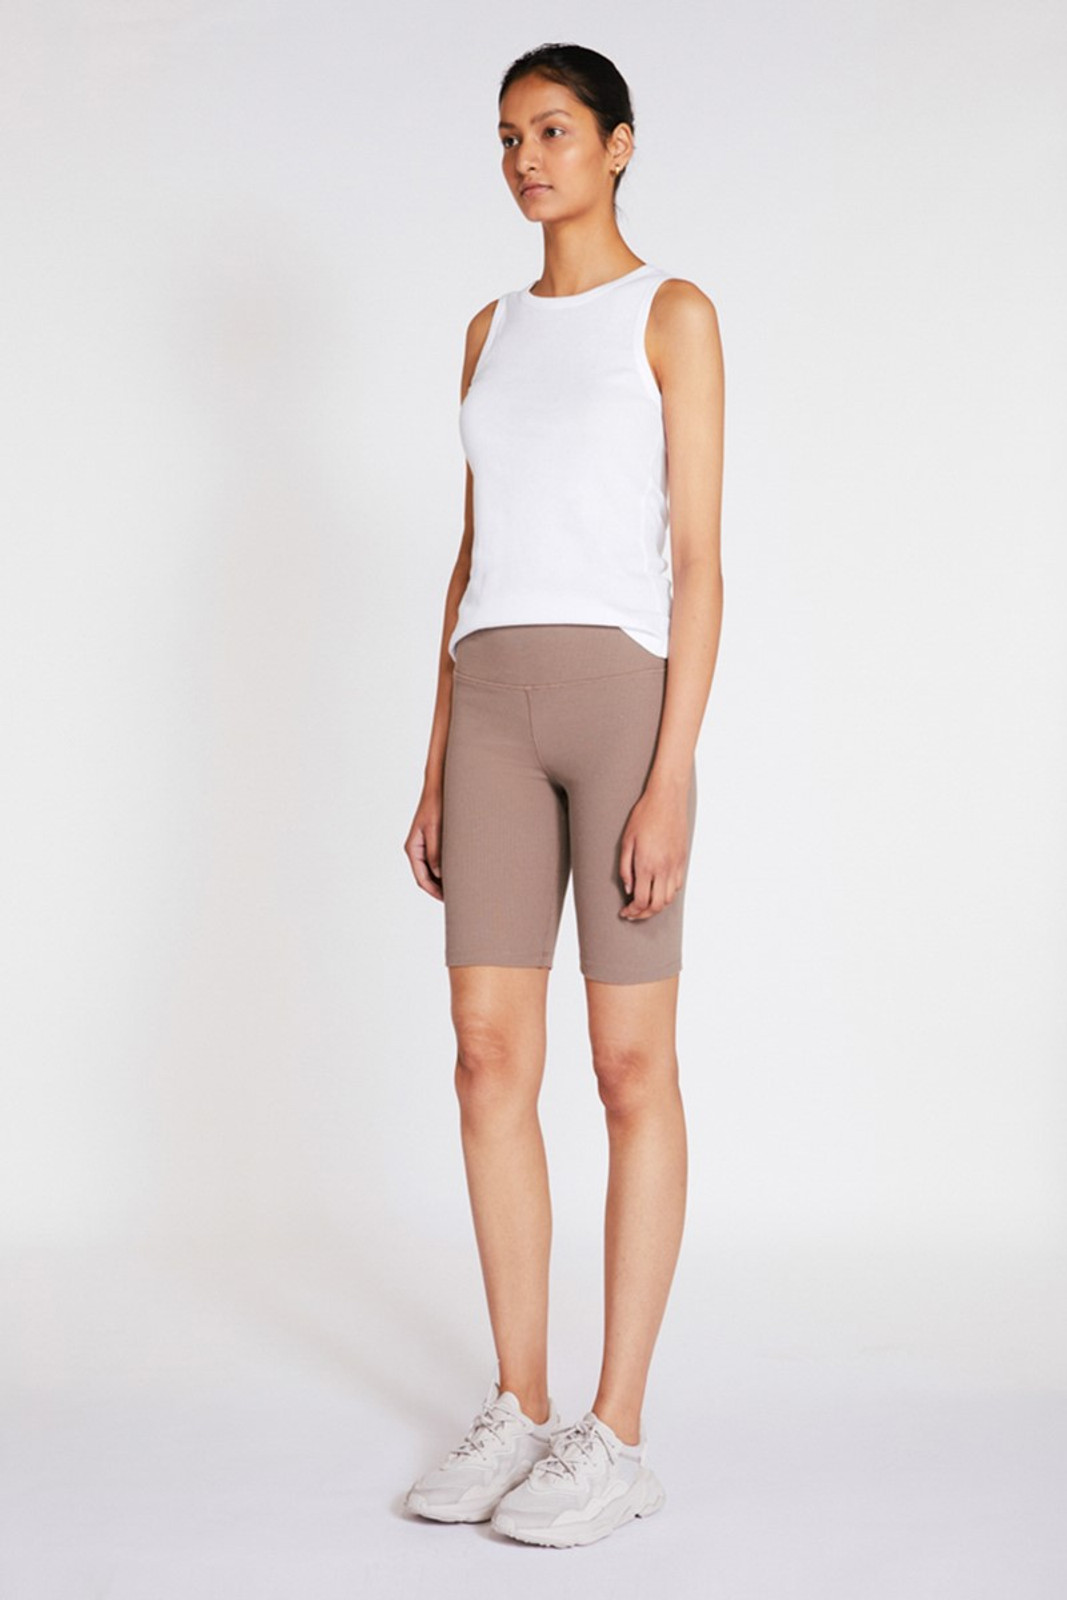 Elka Collective Racer Ribbed Short Neutrals  1